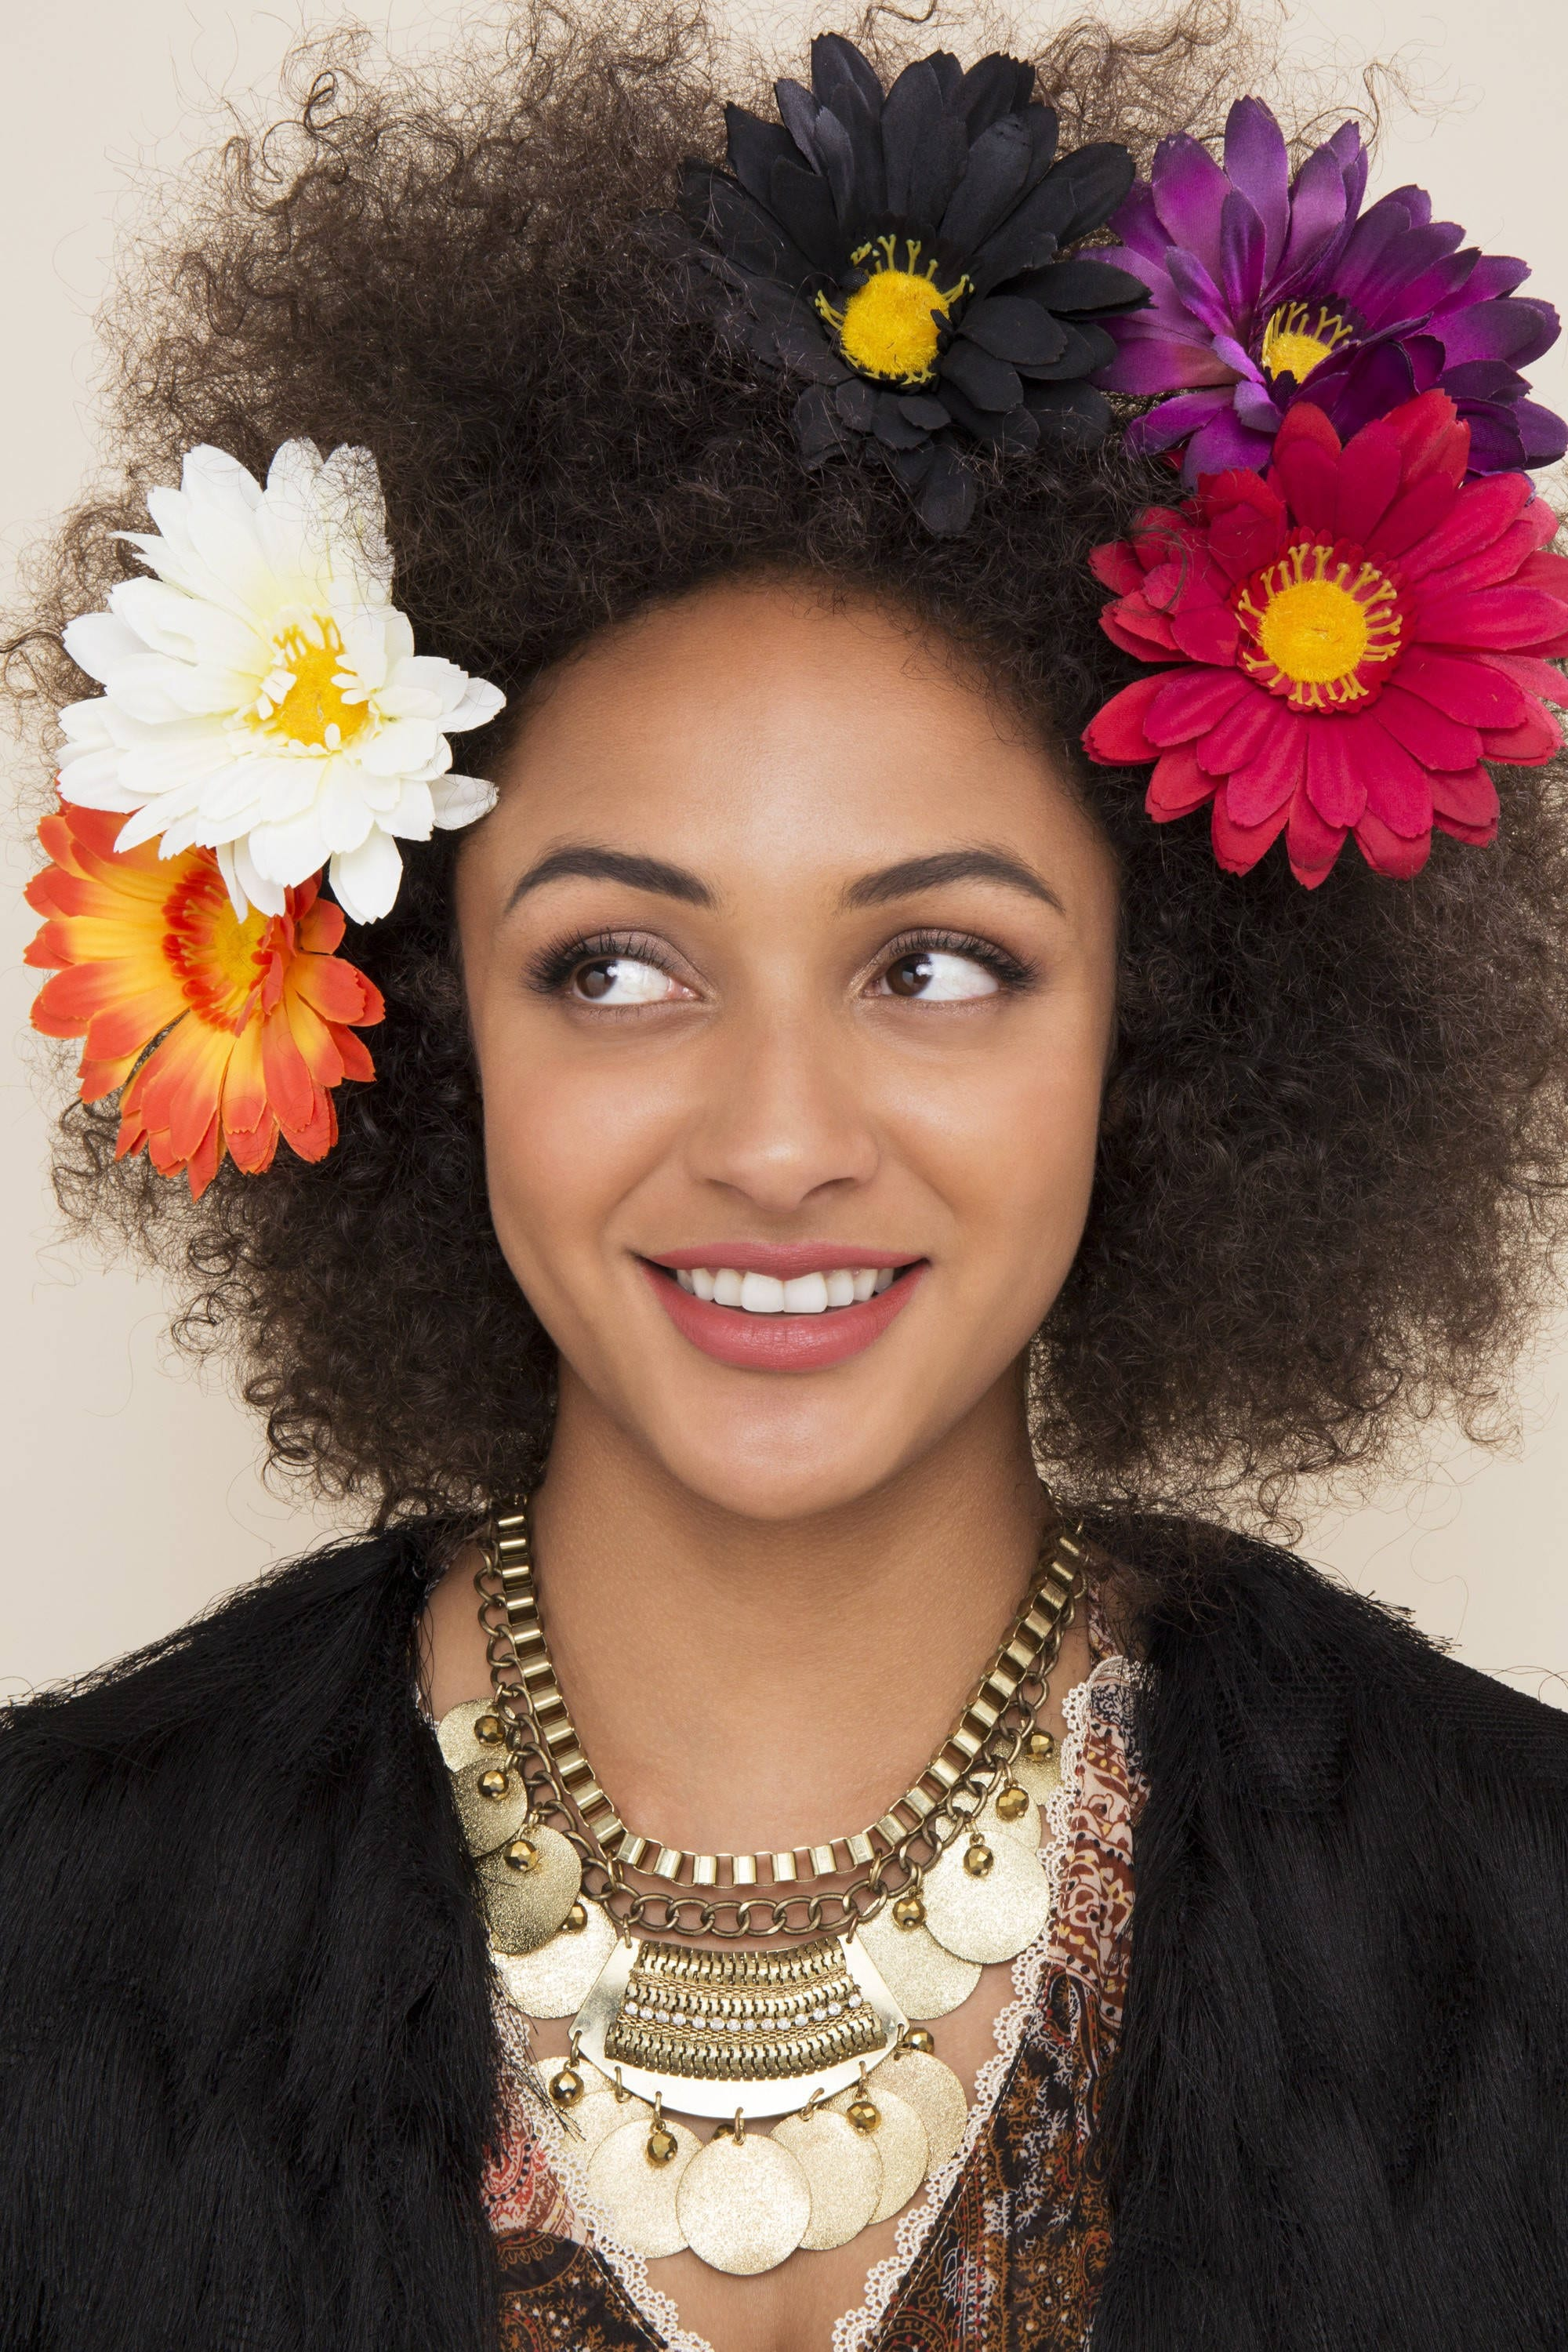 summer hairstyle trends: festival hair floral afro